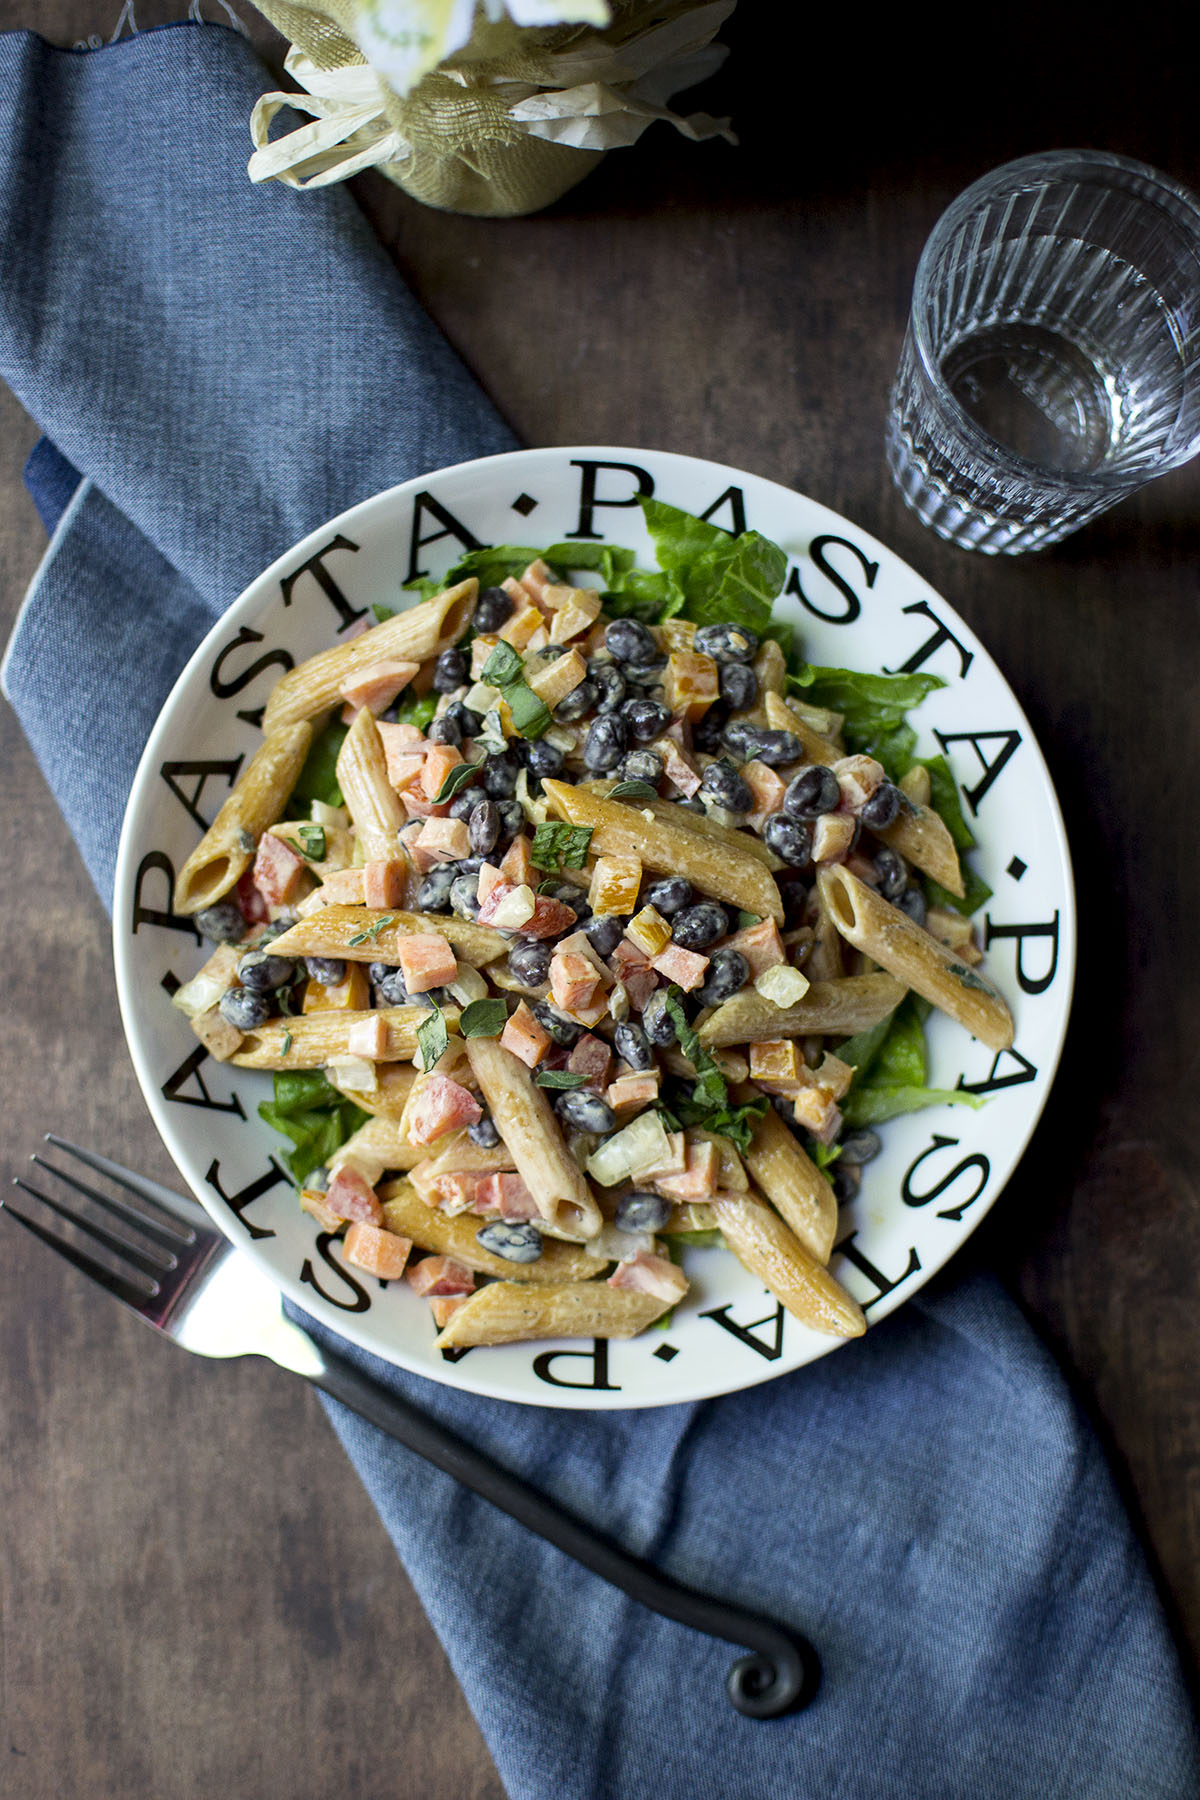 White Pasta bowl with salad and beans